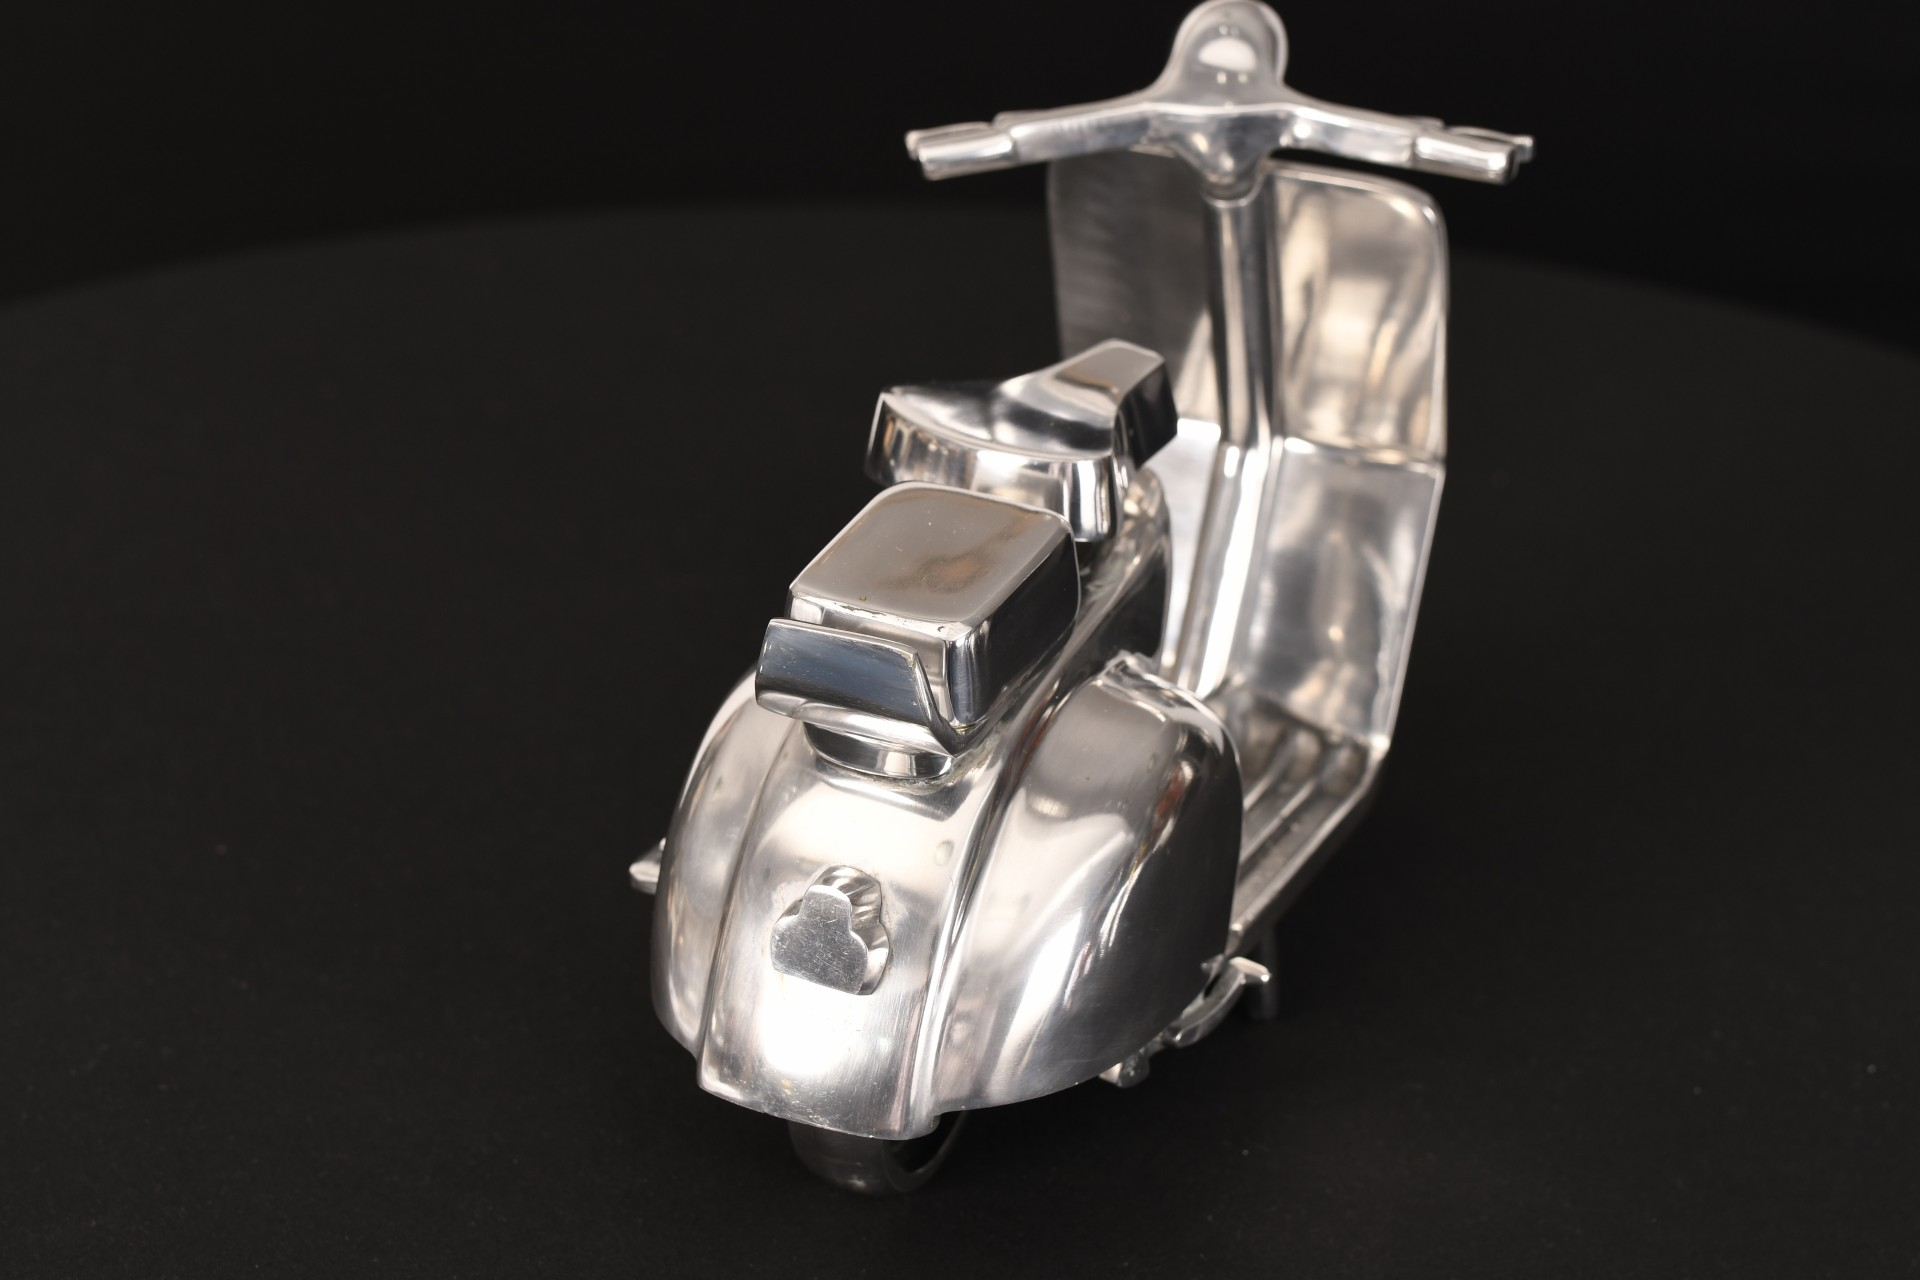 HAND MADE METAL SCOOTER